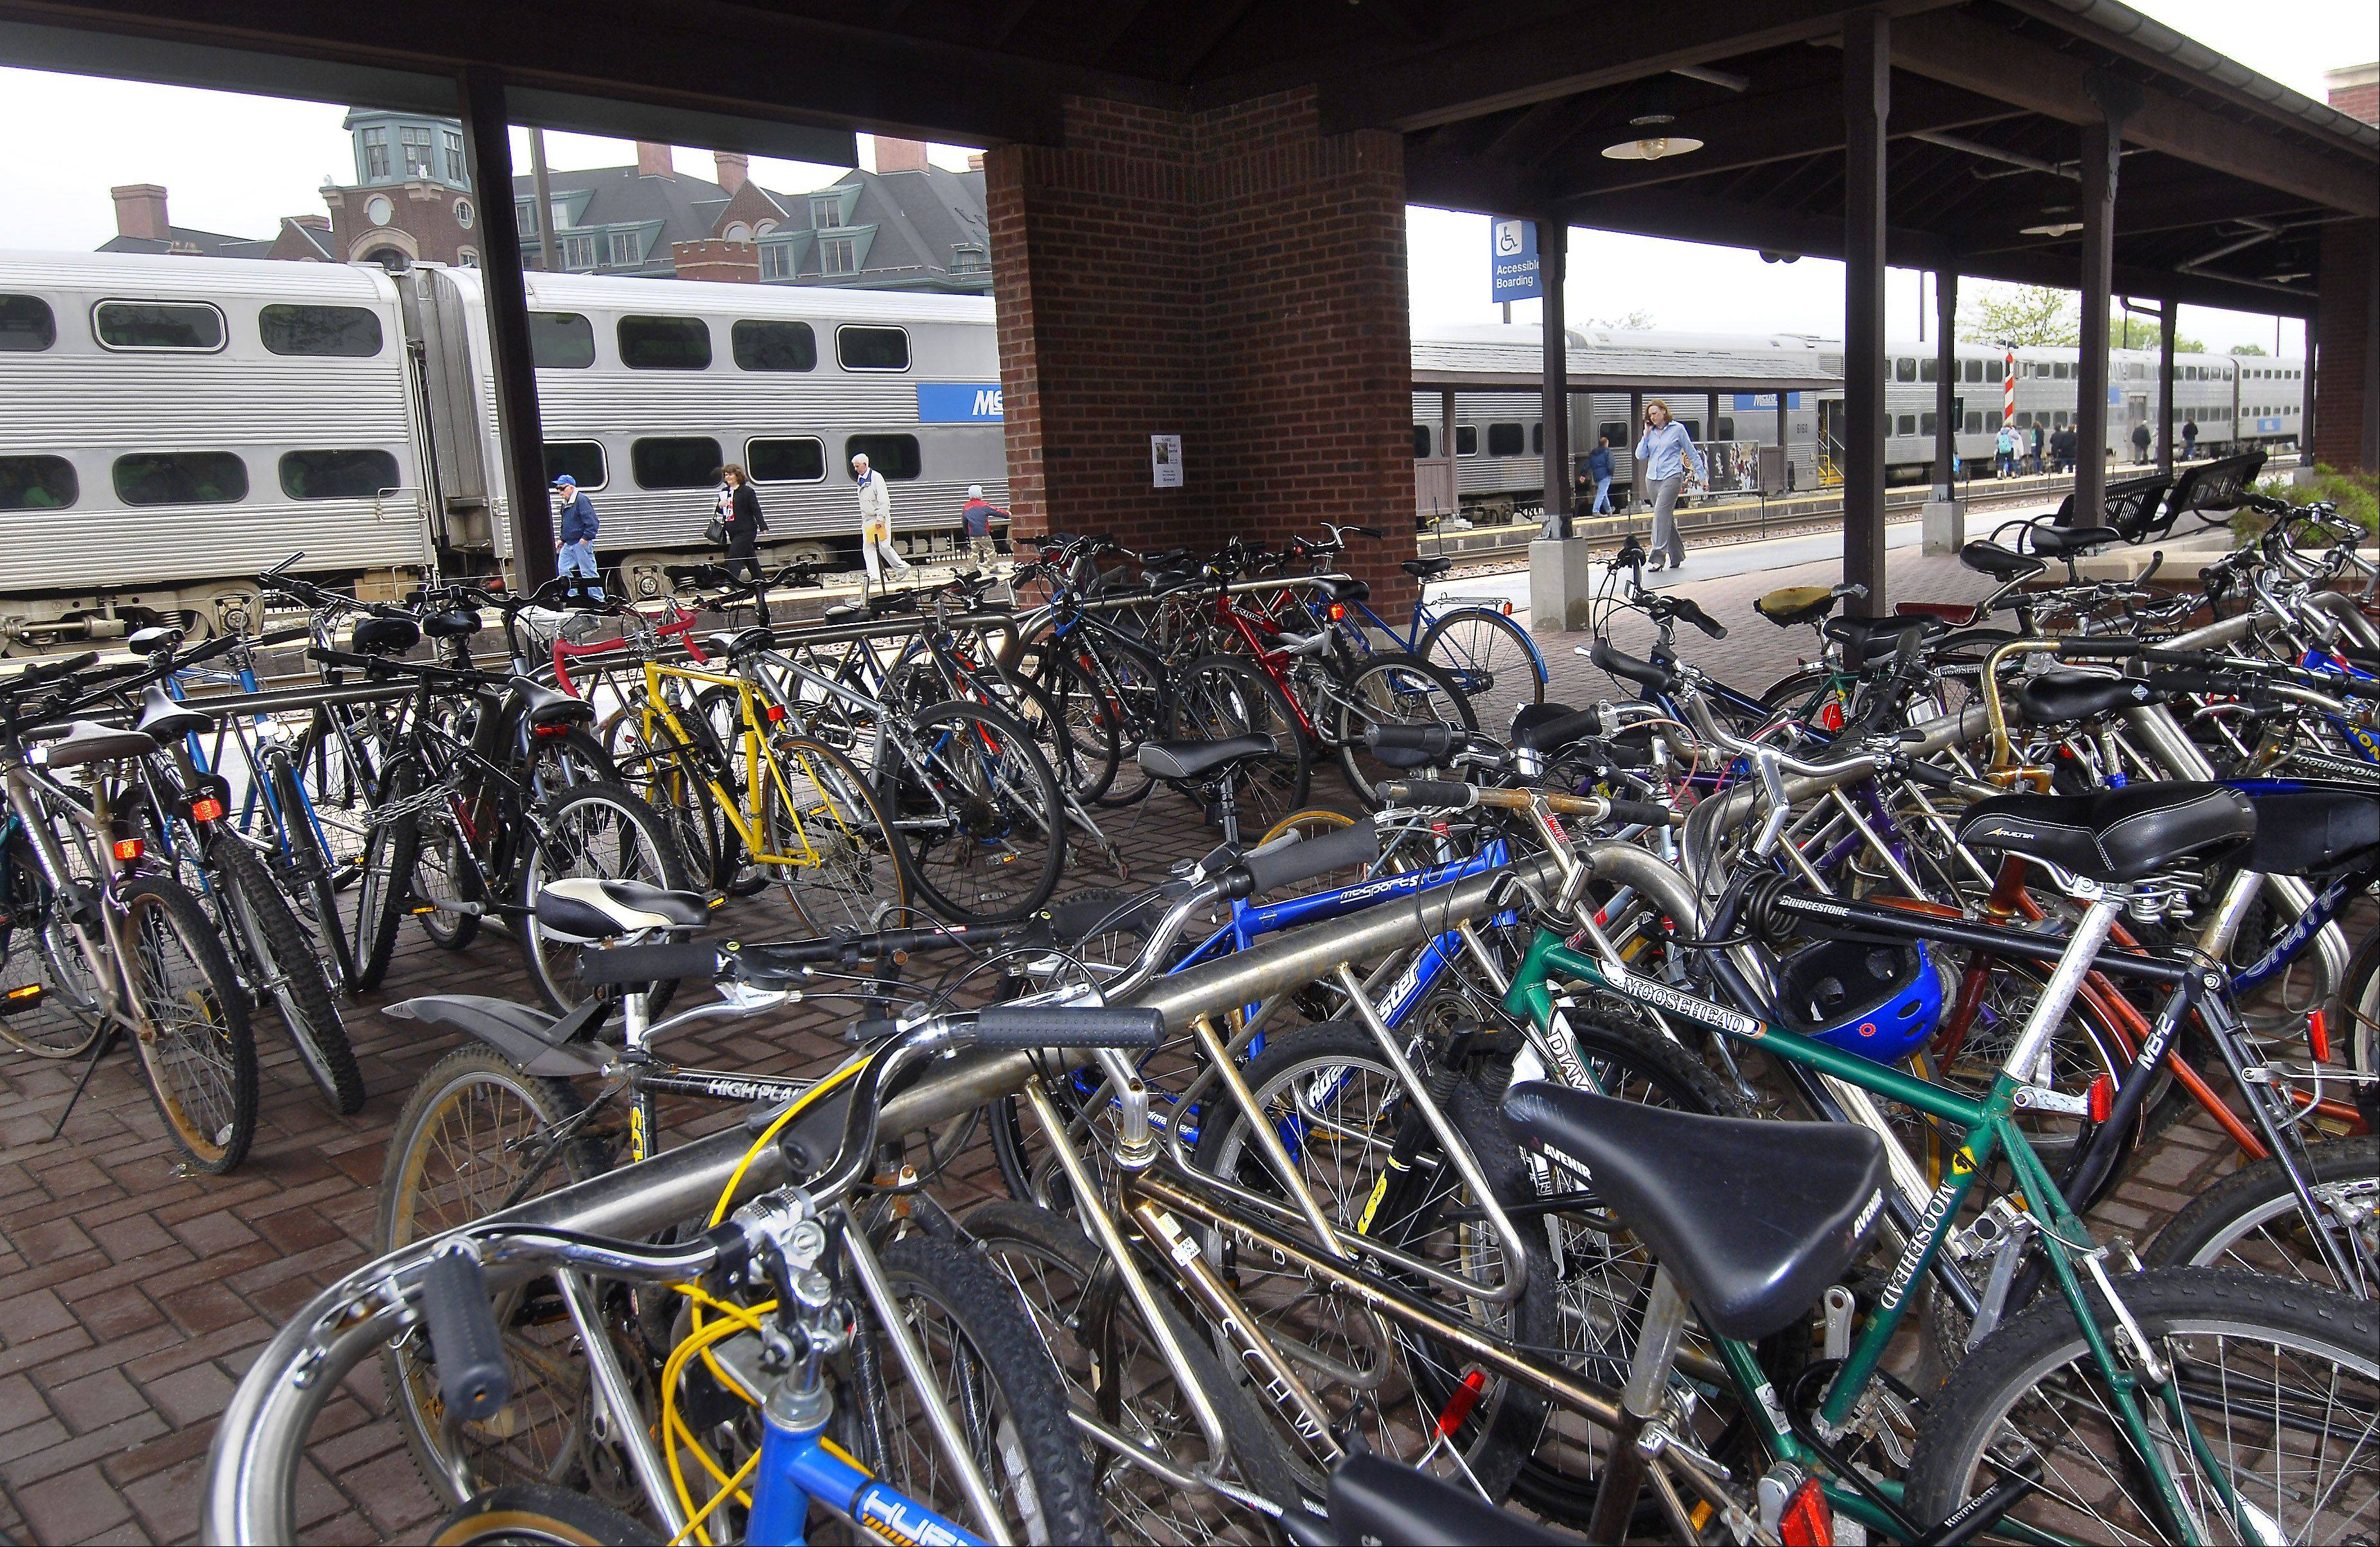 Bike racks at the Metra station in Arlington Heights are among the reasons it ranks as one of the most transit-friendly towns in the region.